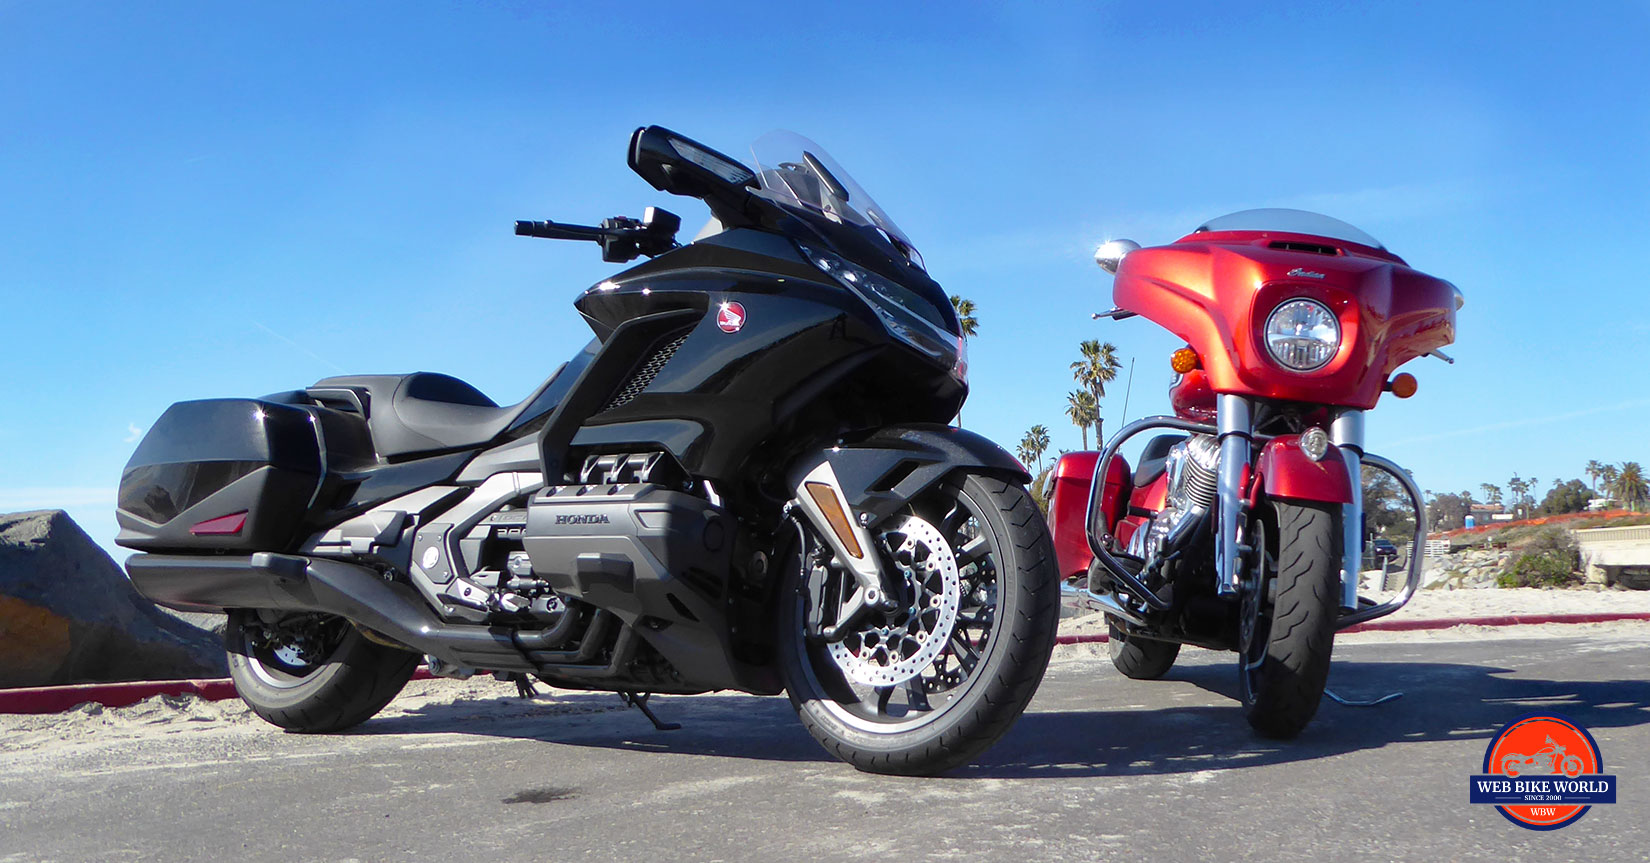 Honda Gold Wing DCT and Indian Chieftain Limited.